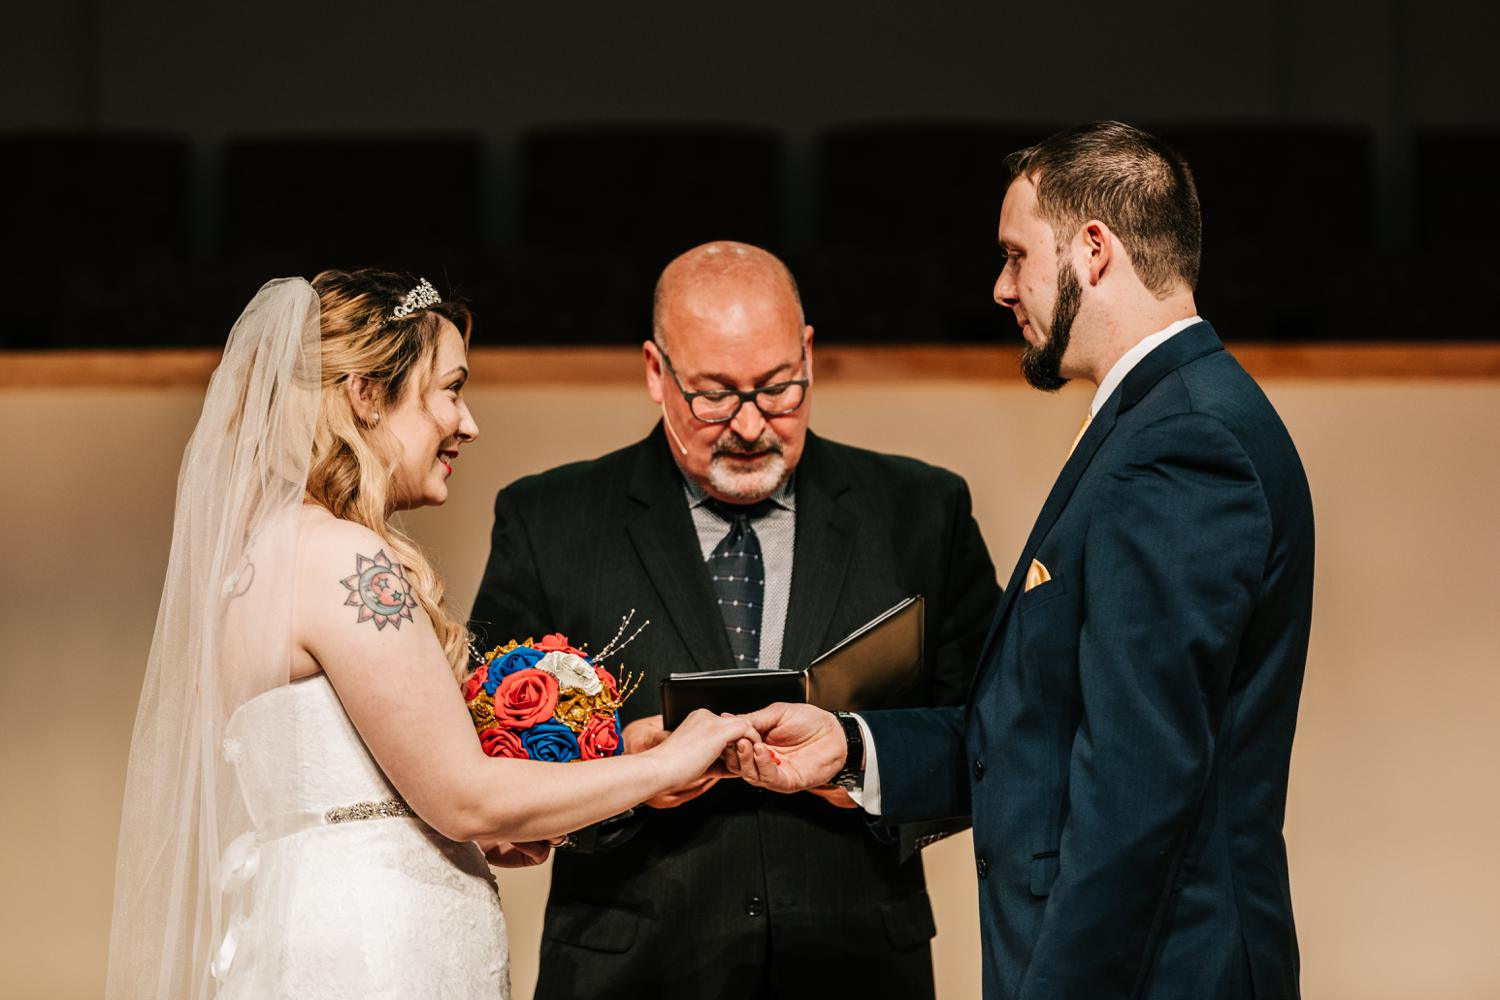 Tattooed bride and groom holding hands at altar